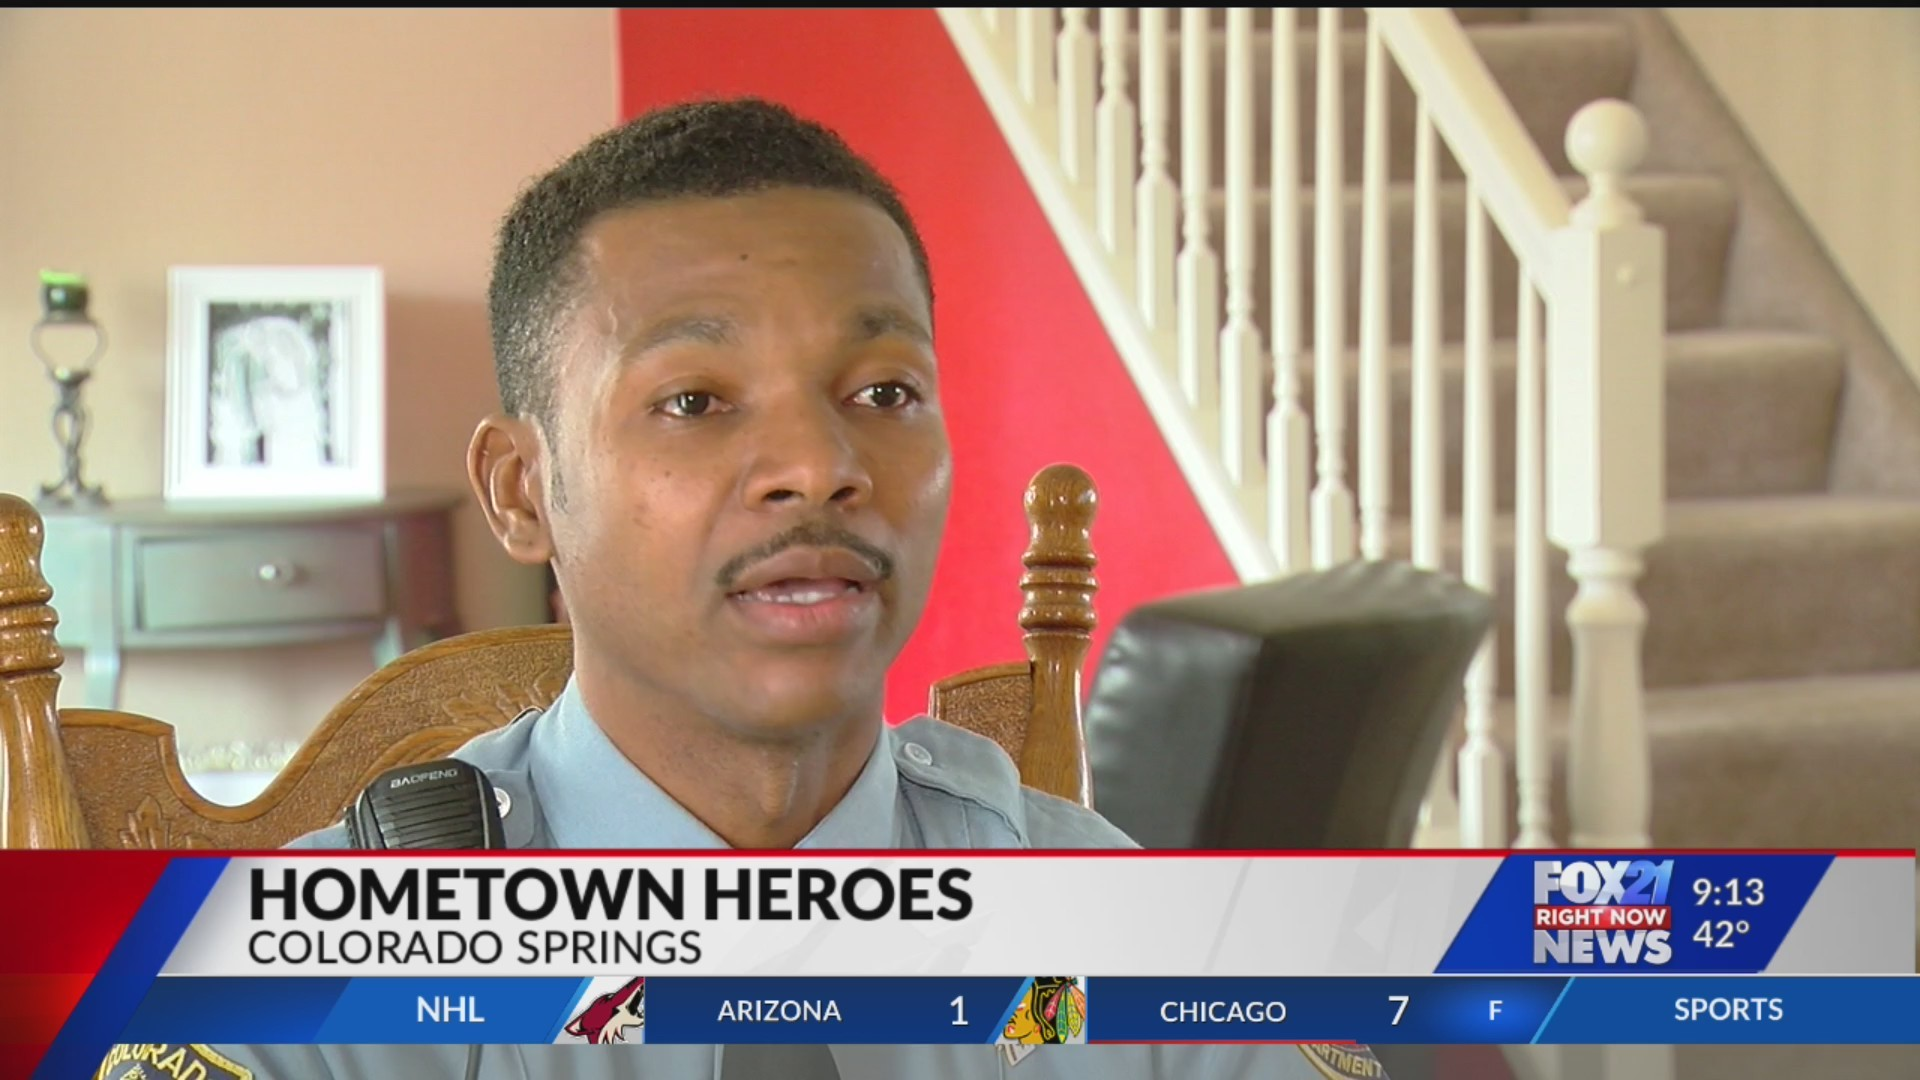 Hometown Heroes: Man risks his life to save others